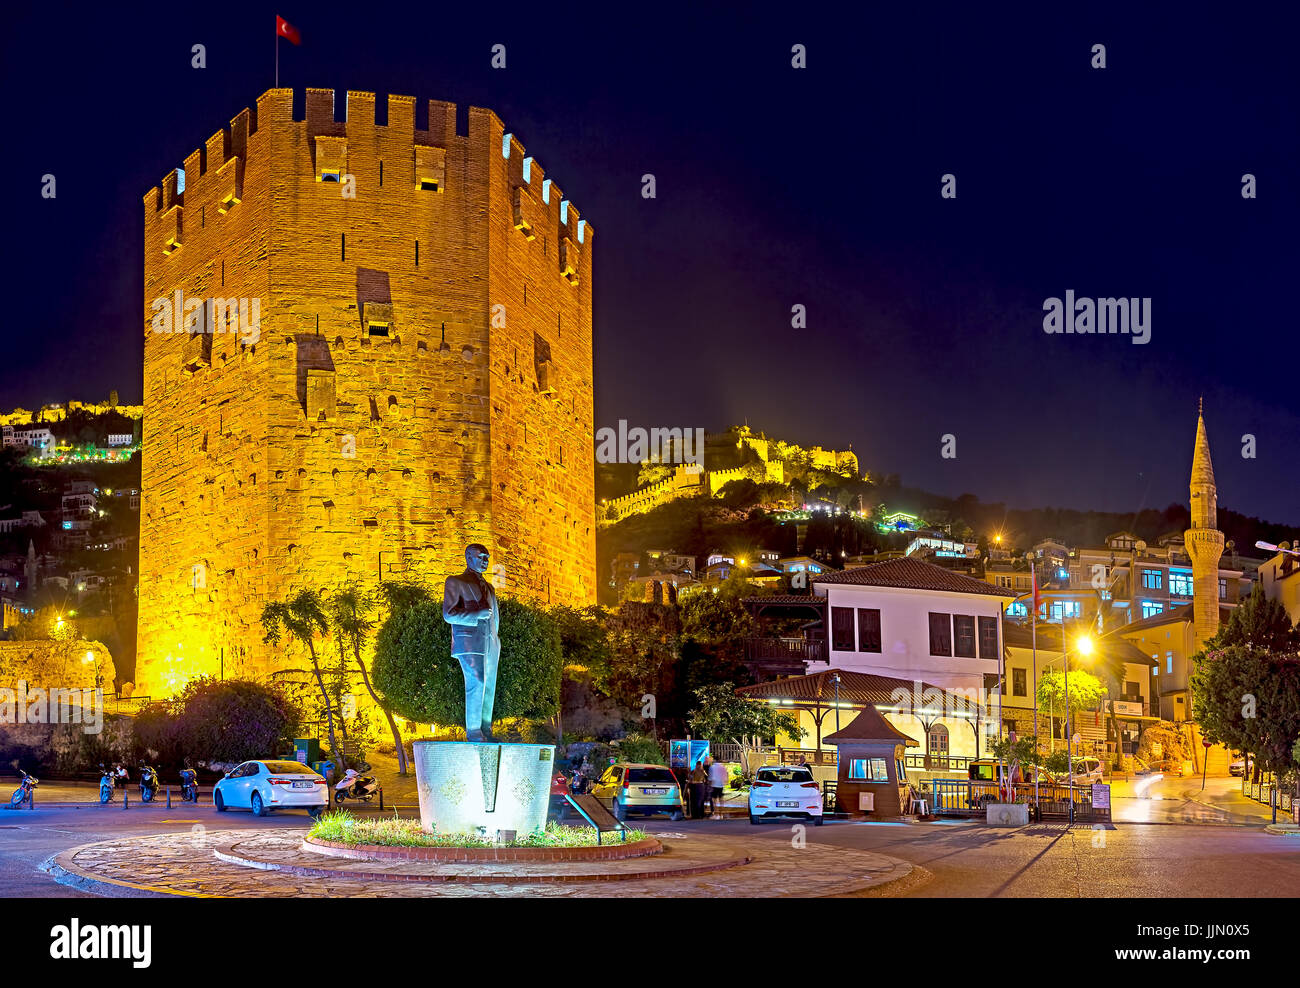 The night cityscape of Alanya, the Red Tower (Kizil Kule) and ramparts of the Citadel are brightly illuminated, - Stock Image